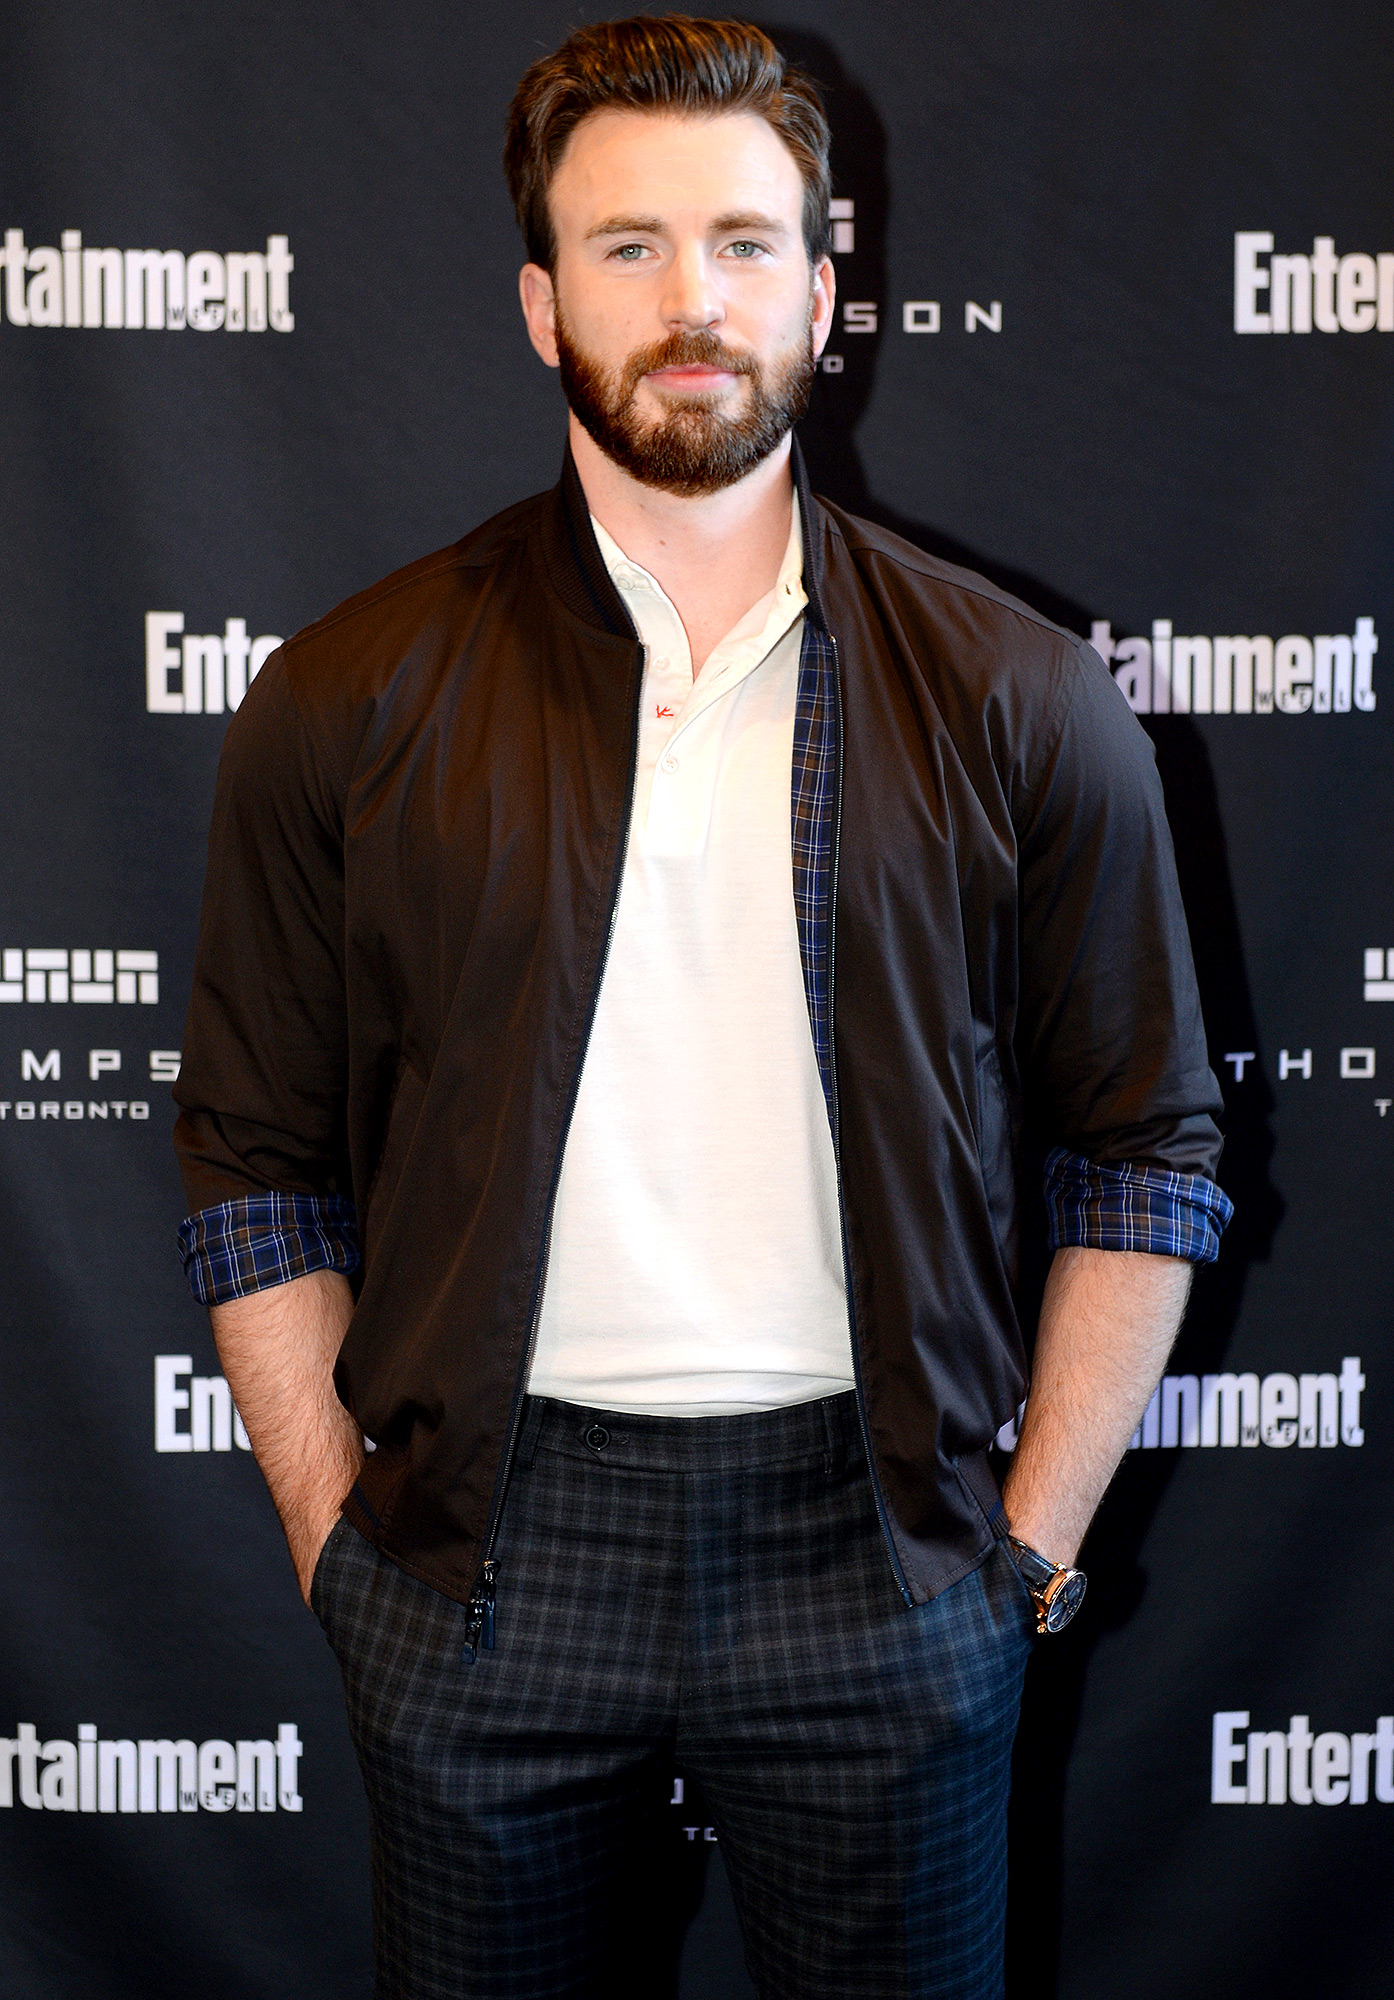 Chris Evans attends Entertainment Weekly's Must List Party at the Toronto International Film Festival